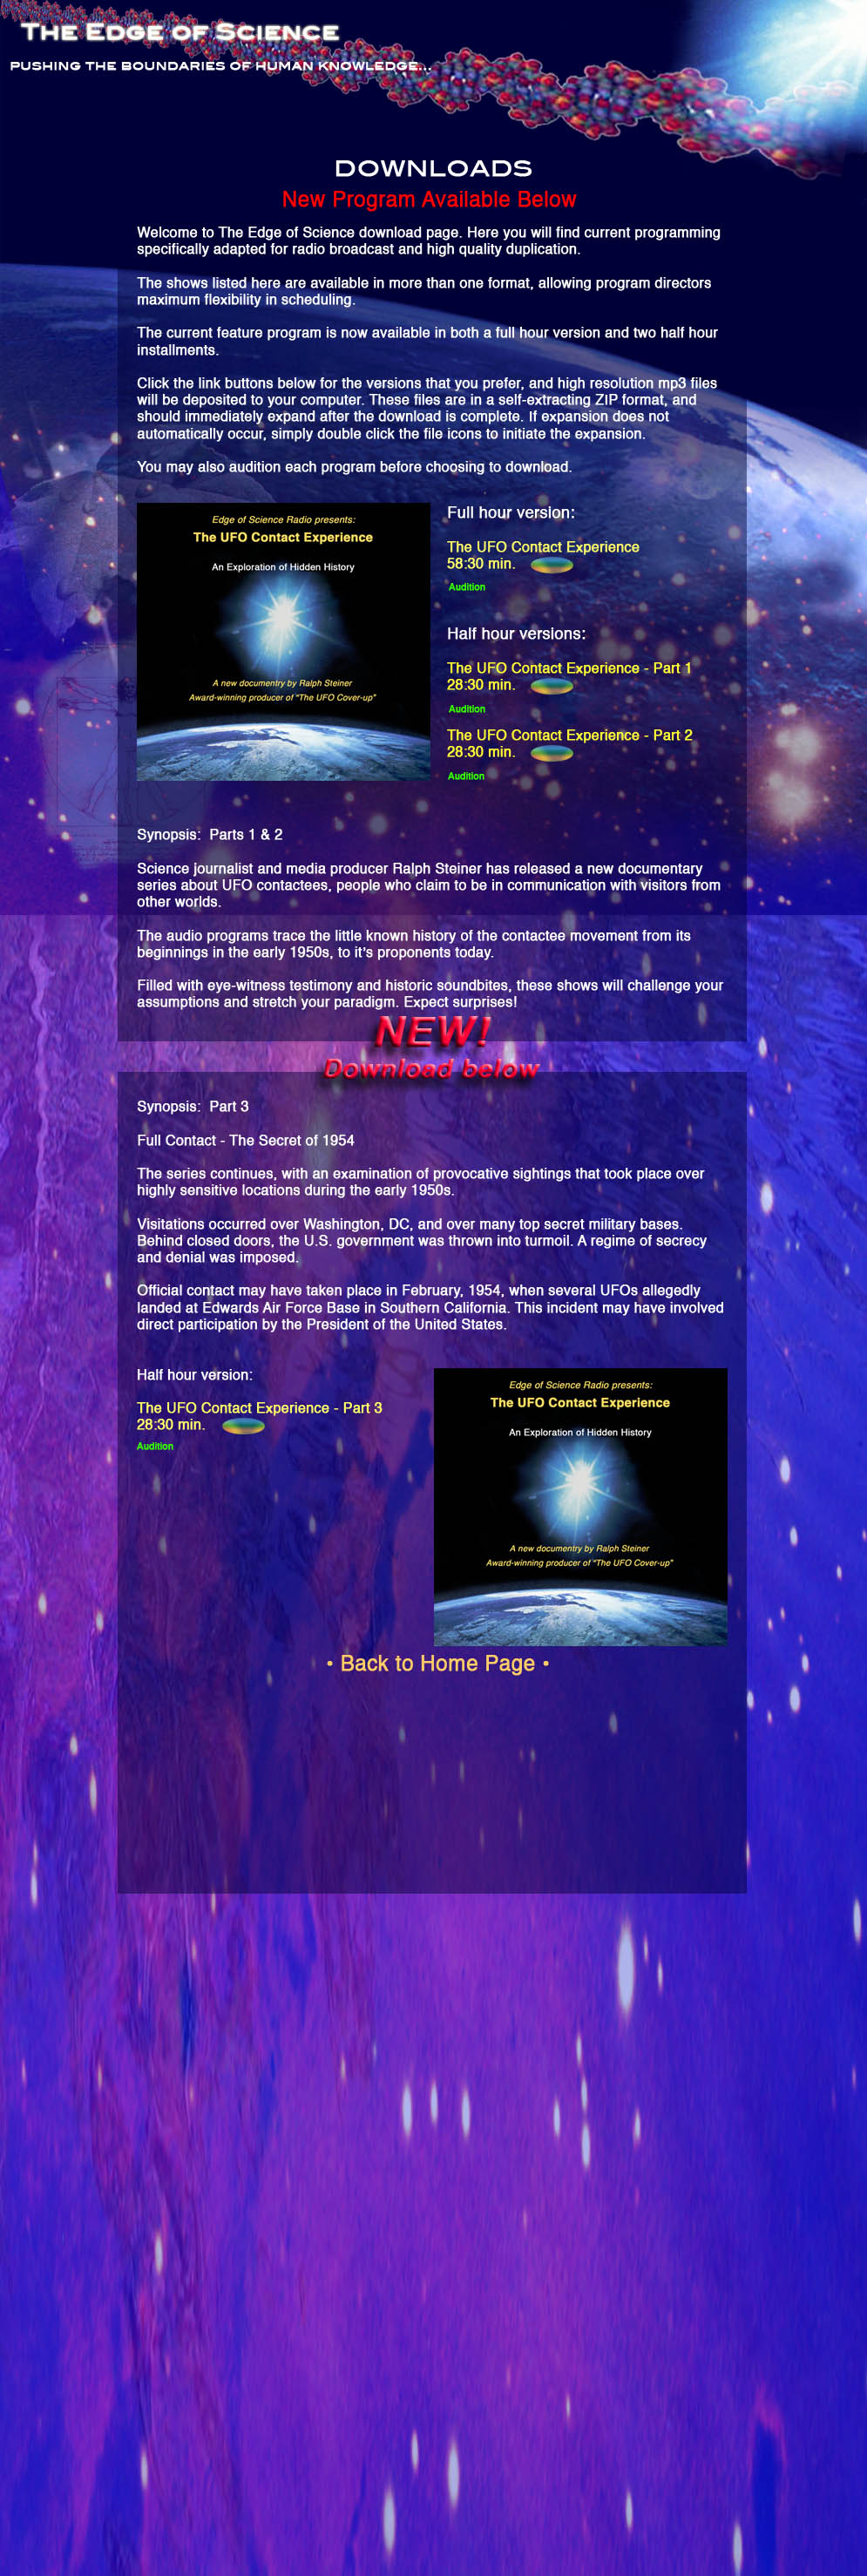 Downloads.  New Program Available.    Welcome to The Edge of Science download page. Here you will find current programming specifically adapted for radio broadcast and high quality duplication.   The shows listed here are available in more than one format, allowing program directors maximum flexibility in scheduling.   The current feature program is now available in both a full hour version and two half hour installments.   Click the link buttons below for the versions that you prefer, and high resolution mp3 files will be deposited to your computer. These files are in a self-extracting ZIP format, and should immediately expand after the download is complete. If expansion does not automatically occur, simply double click the file icons to initiate the expansion.  You may also audition each program before choosing to download.    Synopsis:  Parts 1 & 2  Science journalist and media producer Ralph Steiner has released a new documentary series about UFO contactees, people who claim to be in communication with visitors from other worlds.   The audio programs trace the little known history of the contactee movement from its beginnings in the early 1950s, to it's proponents today.  Filled with eye-witness testimony and historic soundbites, these shows will challenge your assumptions and stretch your paradigm. Expect surprises!  Full hour version:  The UFO Contact Experience   58:30  Audition button  Download button   Half hour versions:  The UFO Contact Experience - Part 1 28:30  Audition button  Download button  The UFO Contact Experience - Part 2 28:30  Audition button  Download button    NEW!  Download below   Synopsis:  Part 3  Full Contact - The Secret of 1954  The series continues, with an examination of provocative sightings that took place over highly sensitive locations during the early 1950s.   Visitations occurred over Washington, DC, and over many top secret military bases. Behind closed doors, the U.S. government was thrown into turmoil. A regime of secrecy and denial was imposed.   Official contact may have taken place in February, 1954, when several UFOs allegedly landed at Edwards Air Force Base in Southern California. This incident may have involved direct participation by the President of the United States.   Half hour version:  The UFO Contact Experience - Part 3  28:30   Audition button  Download button